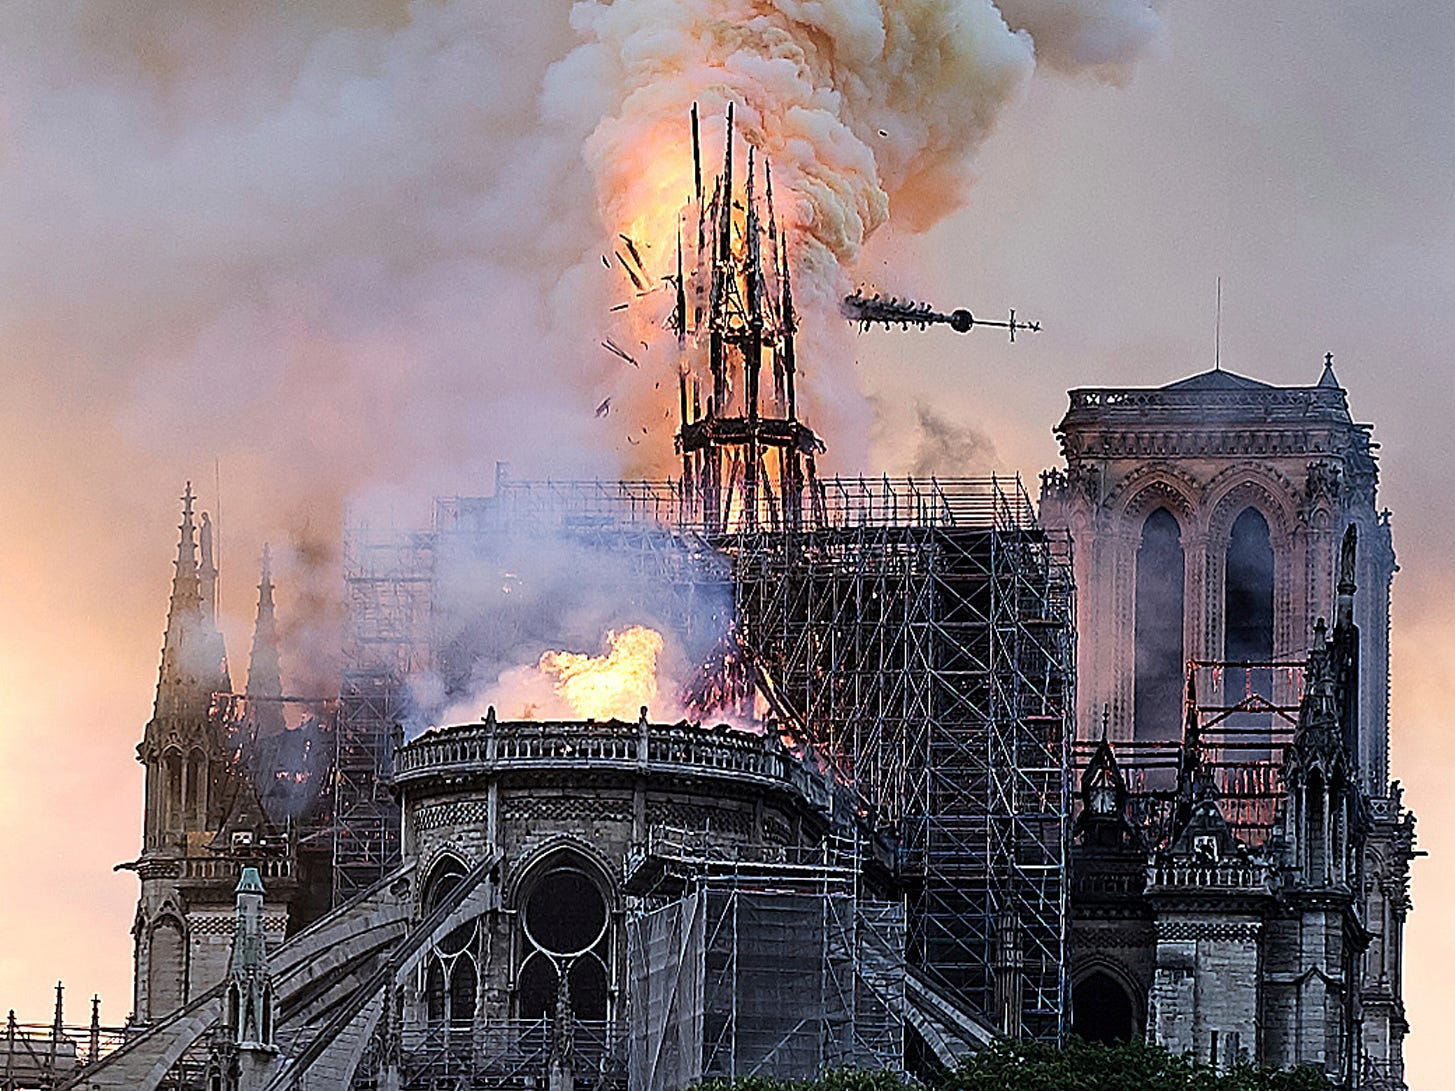 Flames and smoke rise as the spire on Notre Dame cathedral collapses in Paris, Monday, April 15, 2019. Massive plumes of yellow brown smoke is filling the air above Notre Dame Cathedral and ash is falling on tourists and others around the island that marks the center of Paris.